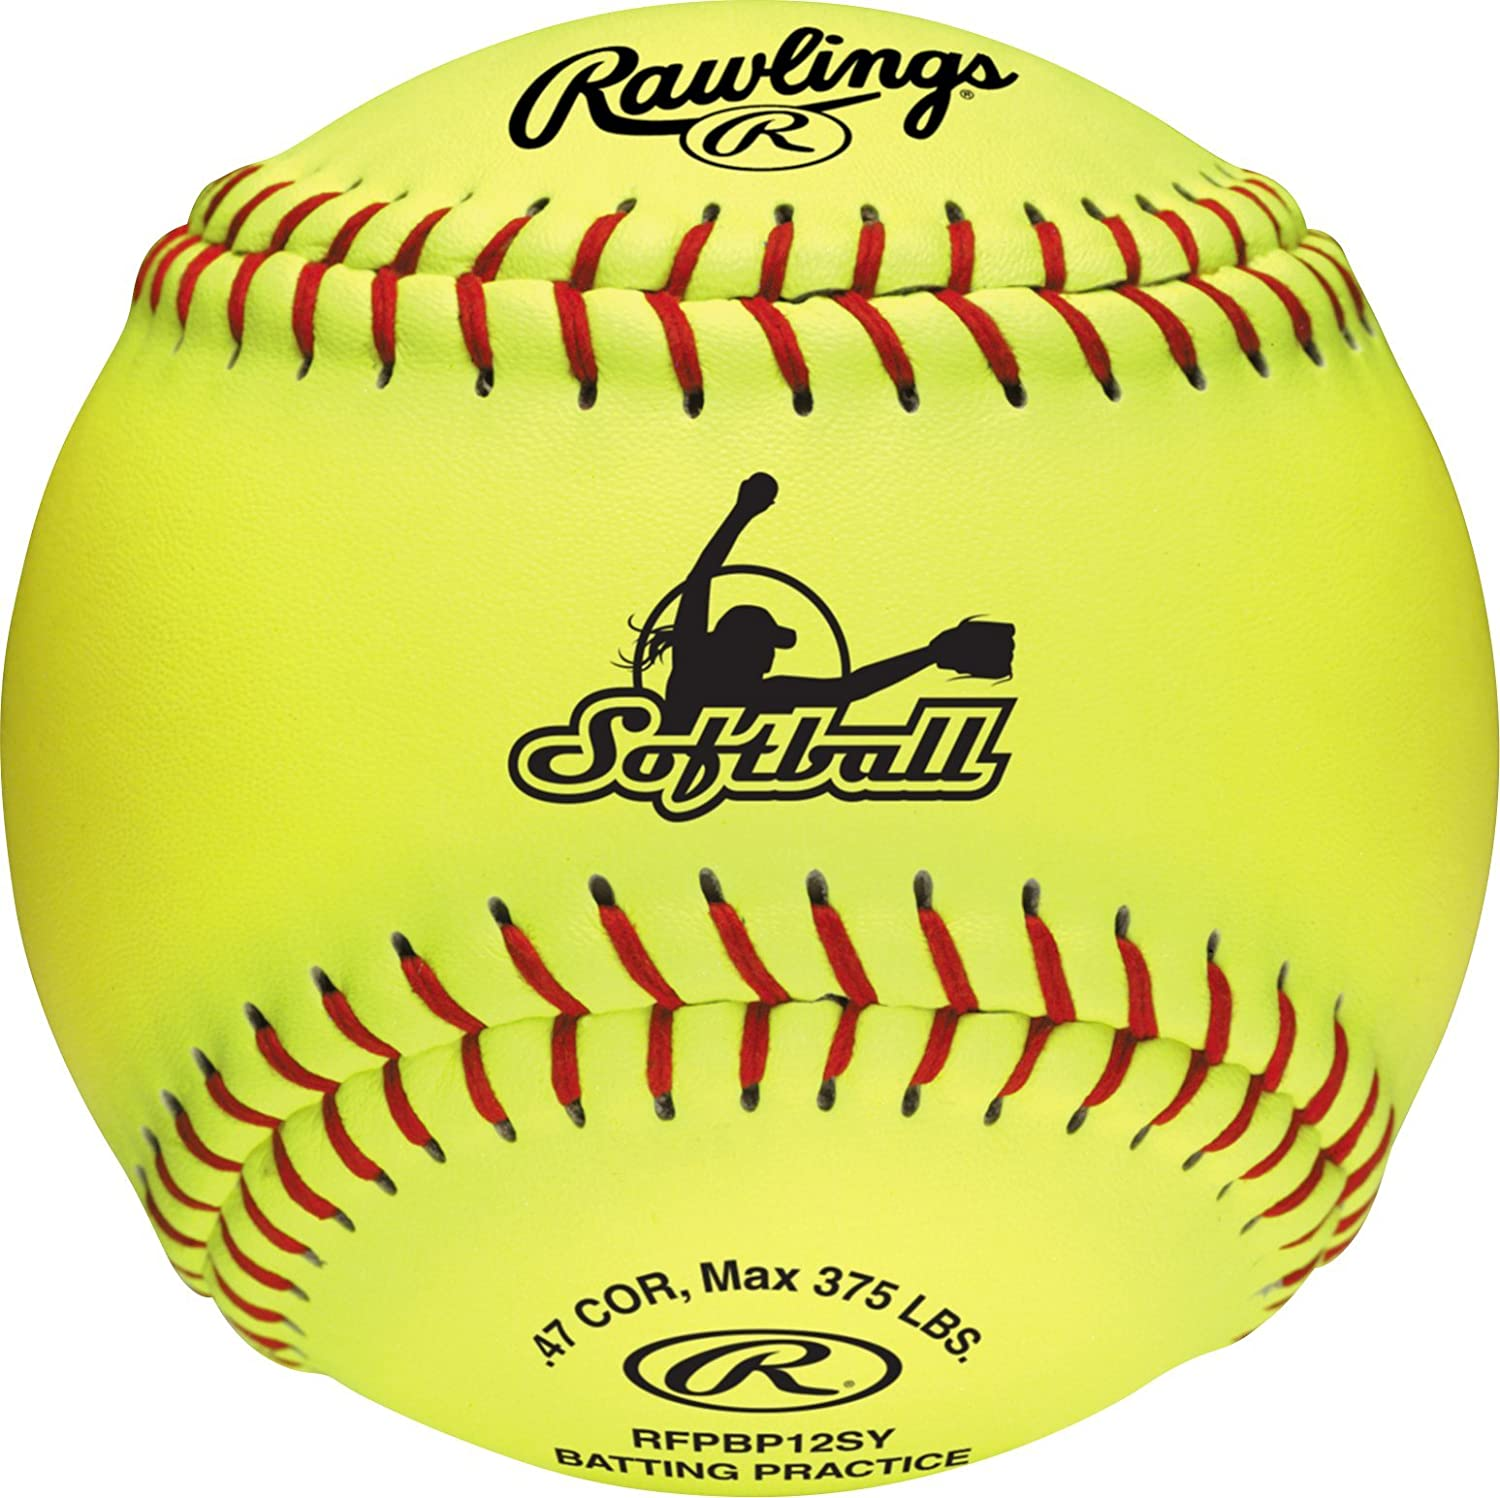 Rawlings Fastpitch Softballs, Yellow, 12 Inch, Collegiate and High School (Box of 6), RFPBP12SY-BOX6 : Sports & Outdoors